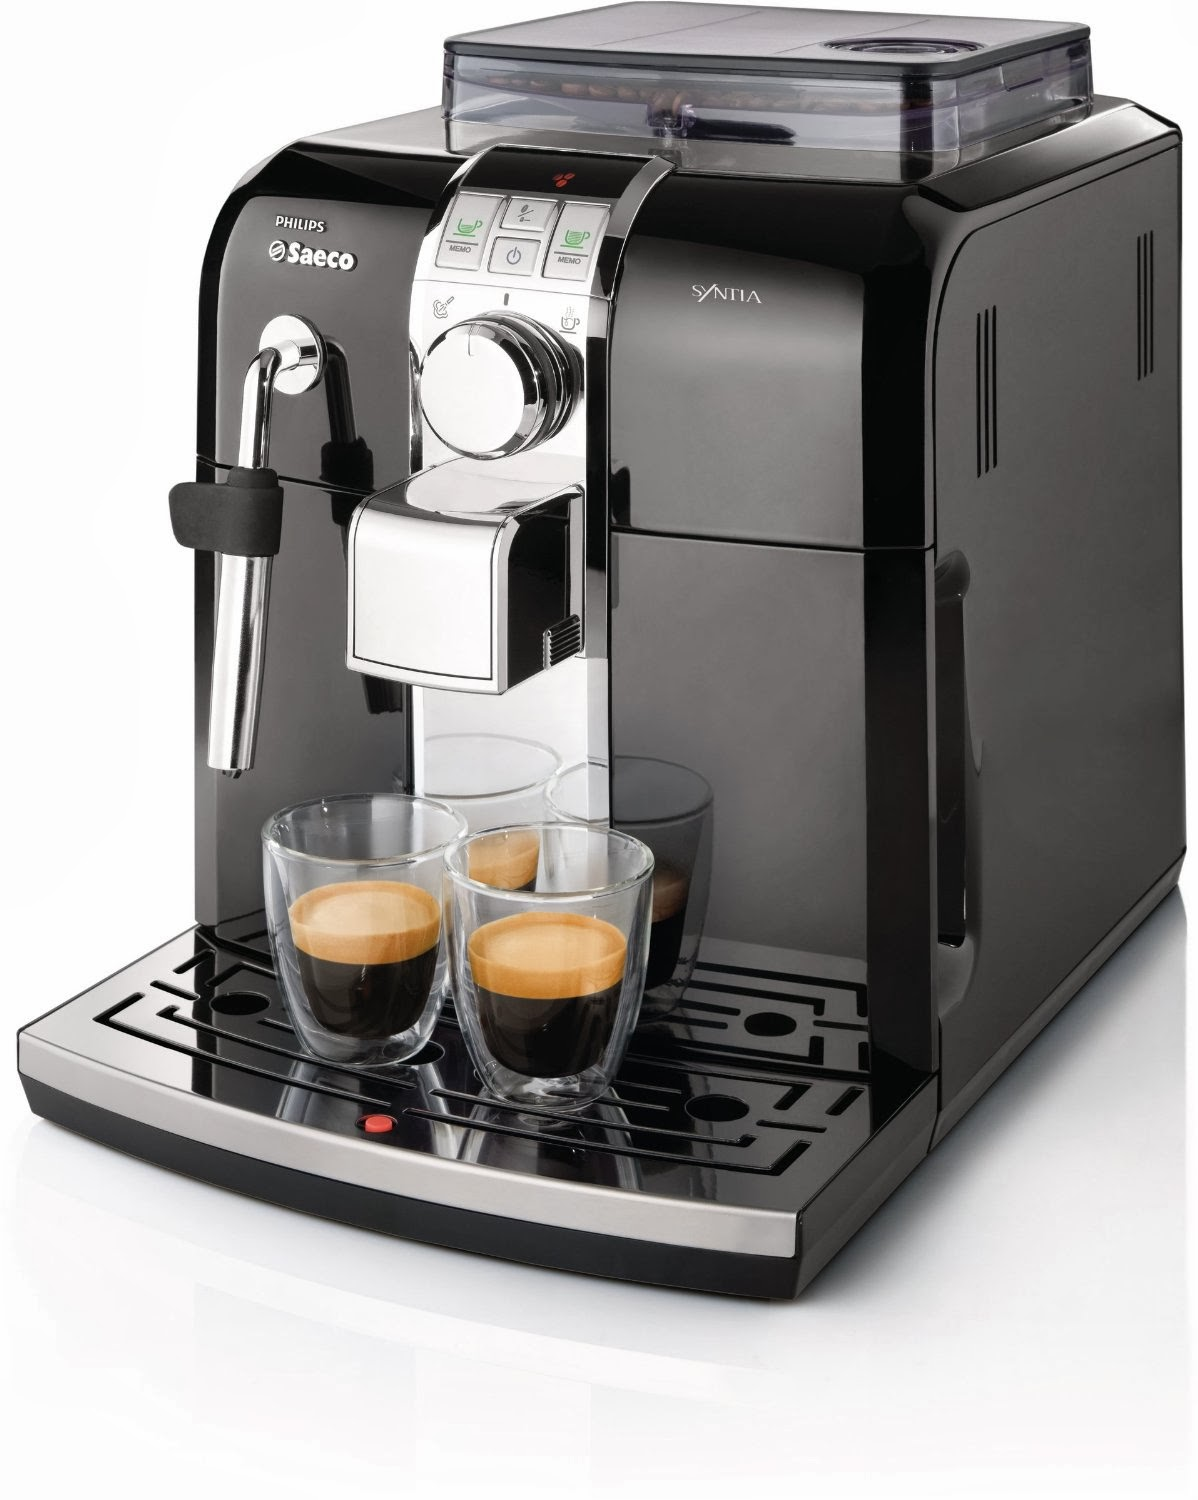 Philip Saeco The Best Office Coffee Machine For Your Business Latte Art Guide